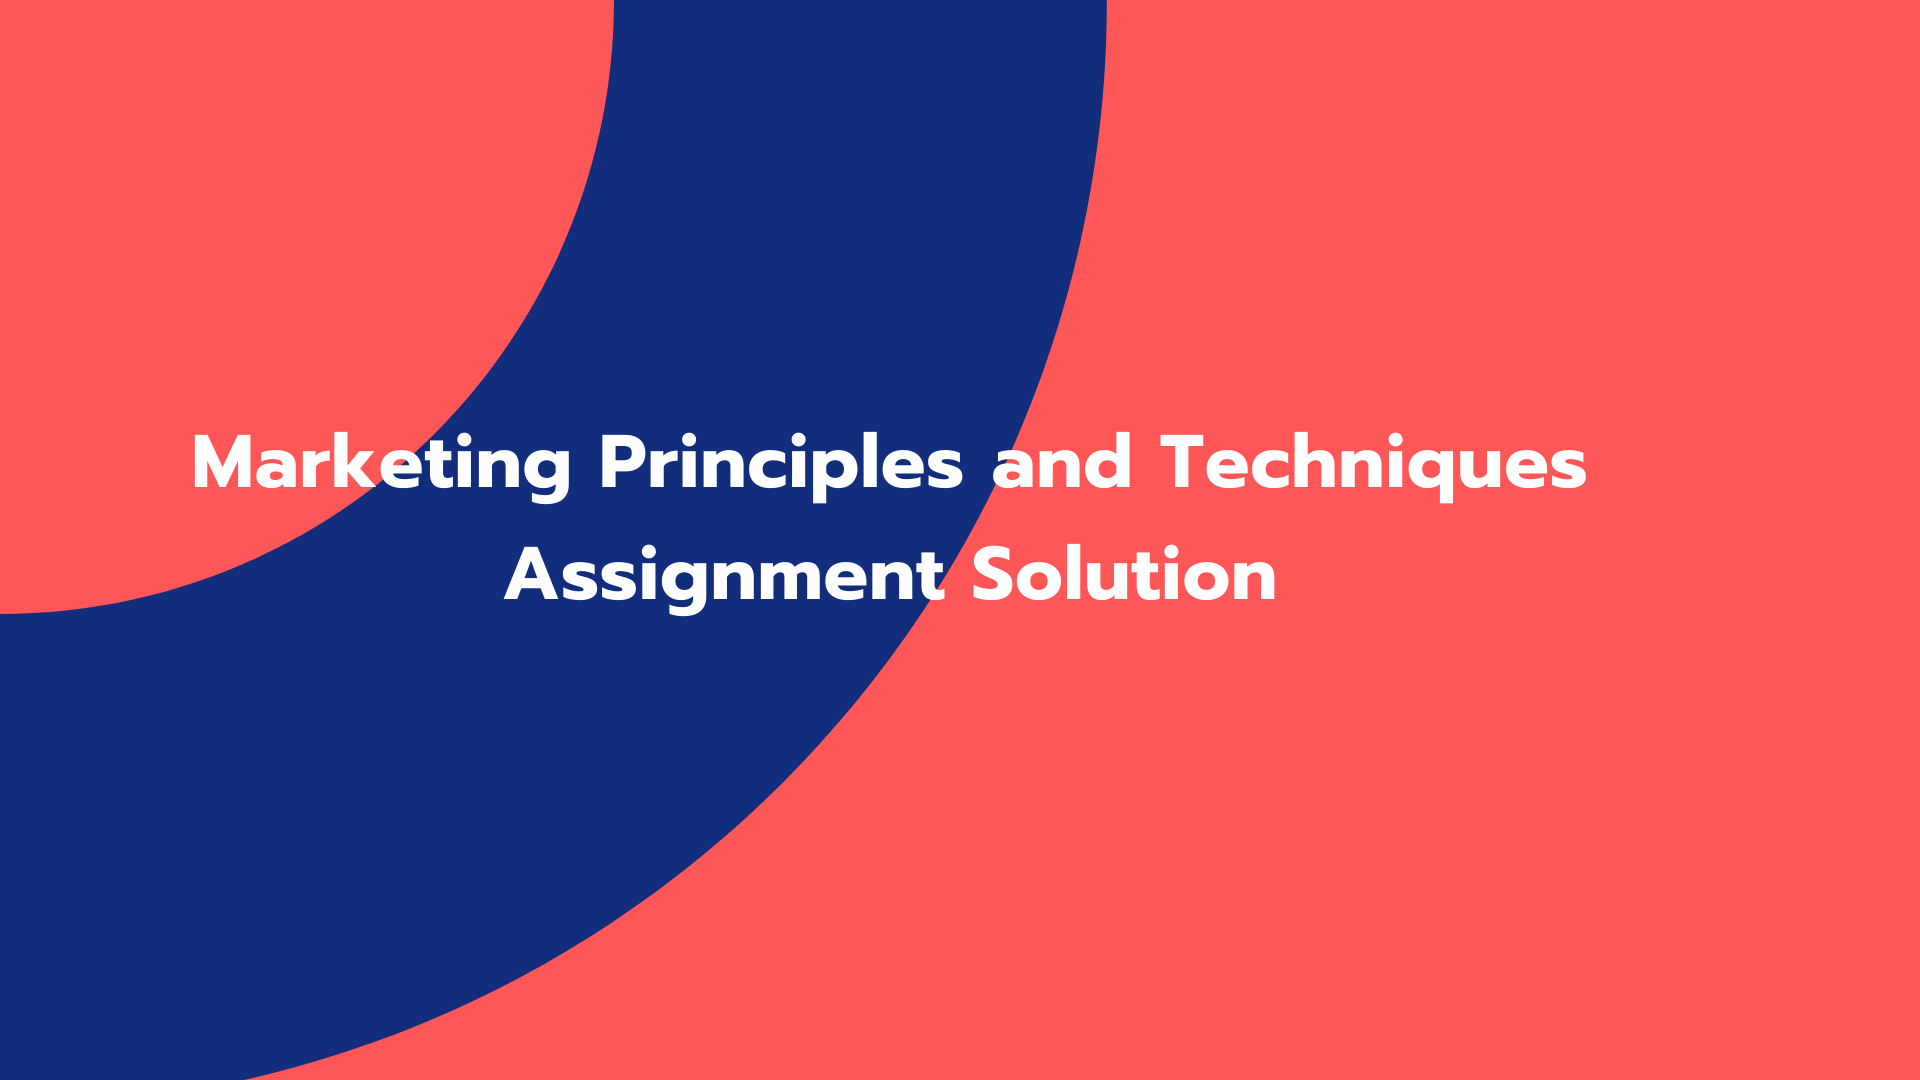 Marketing Principles and Techniques Assignment Solution